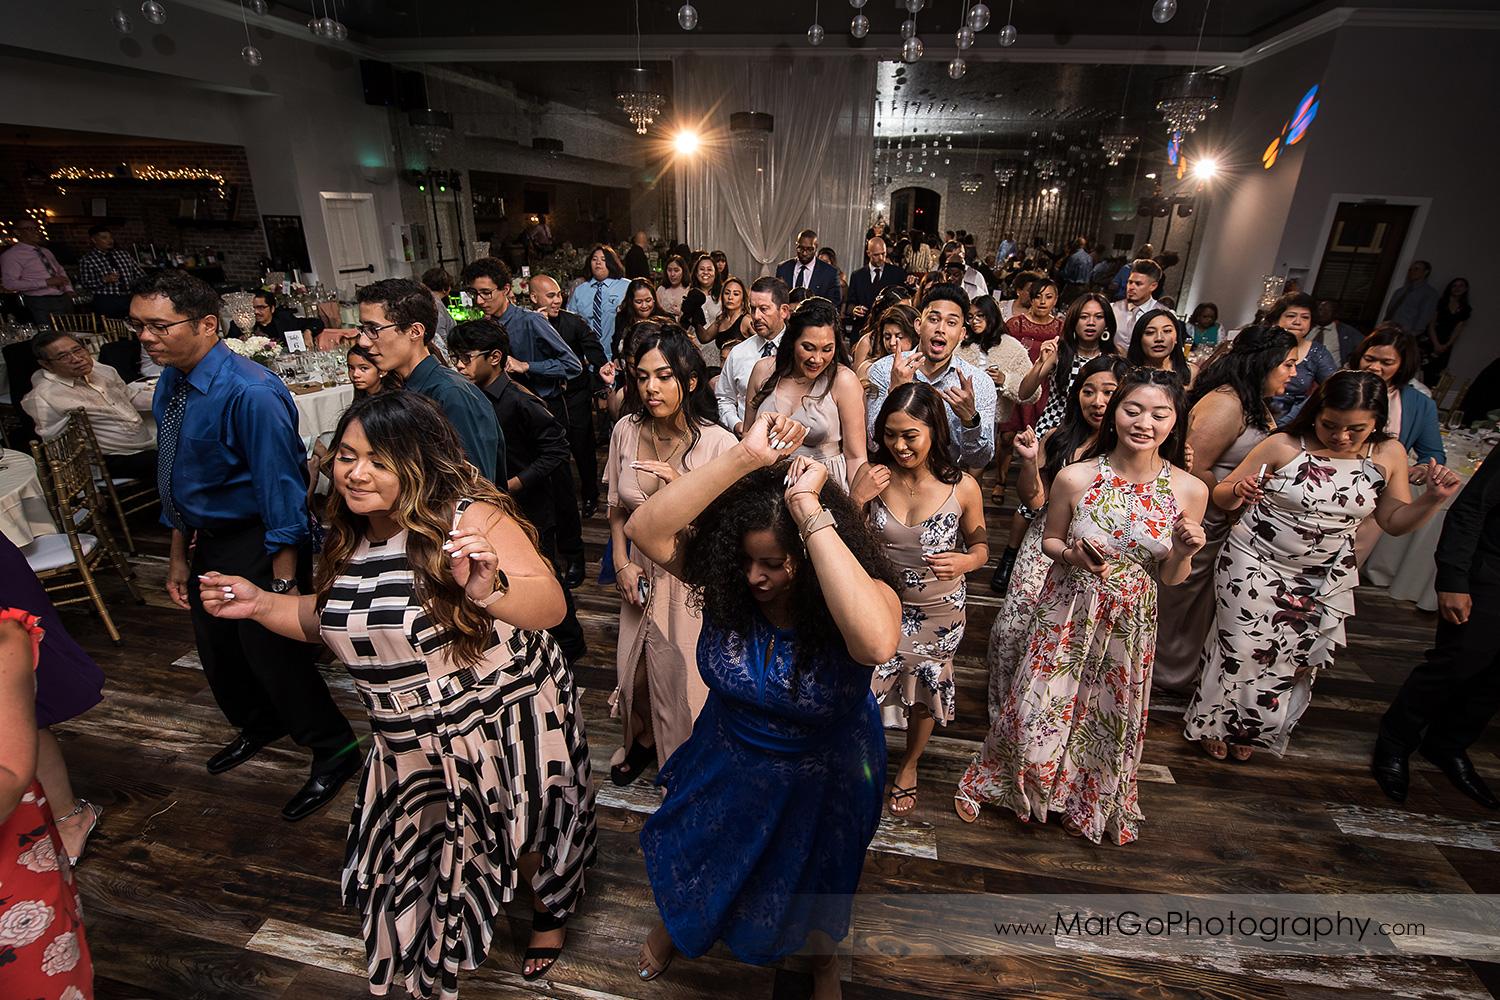 full dance floor during wedding reception at Sunol's Casa Bella